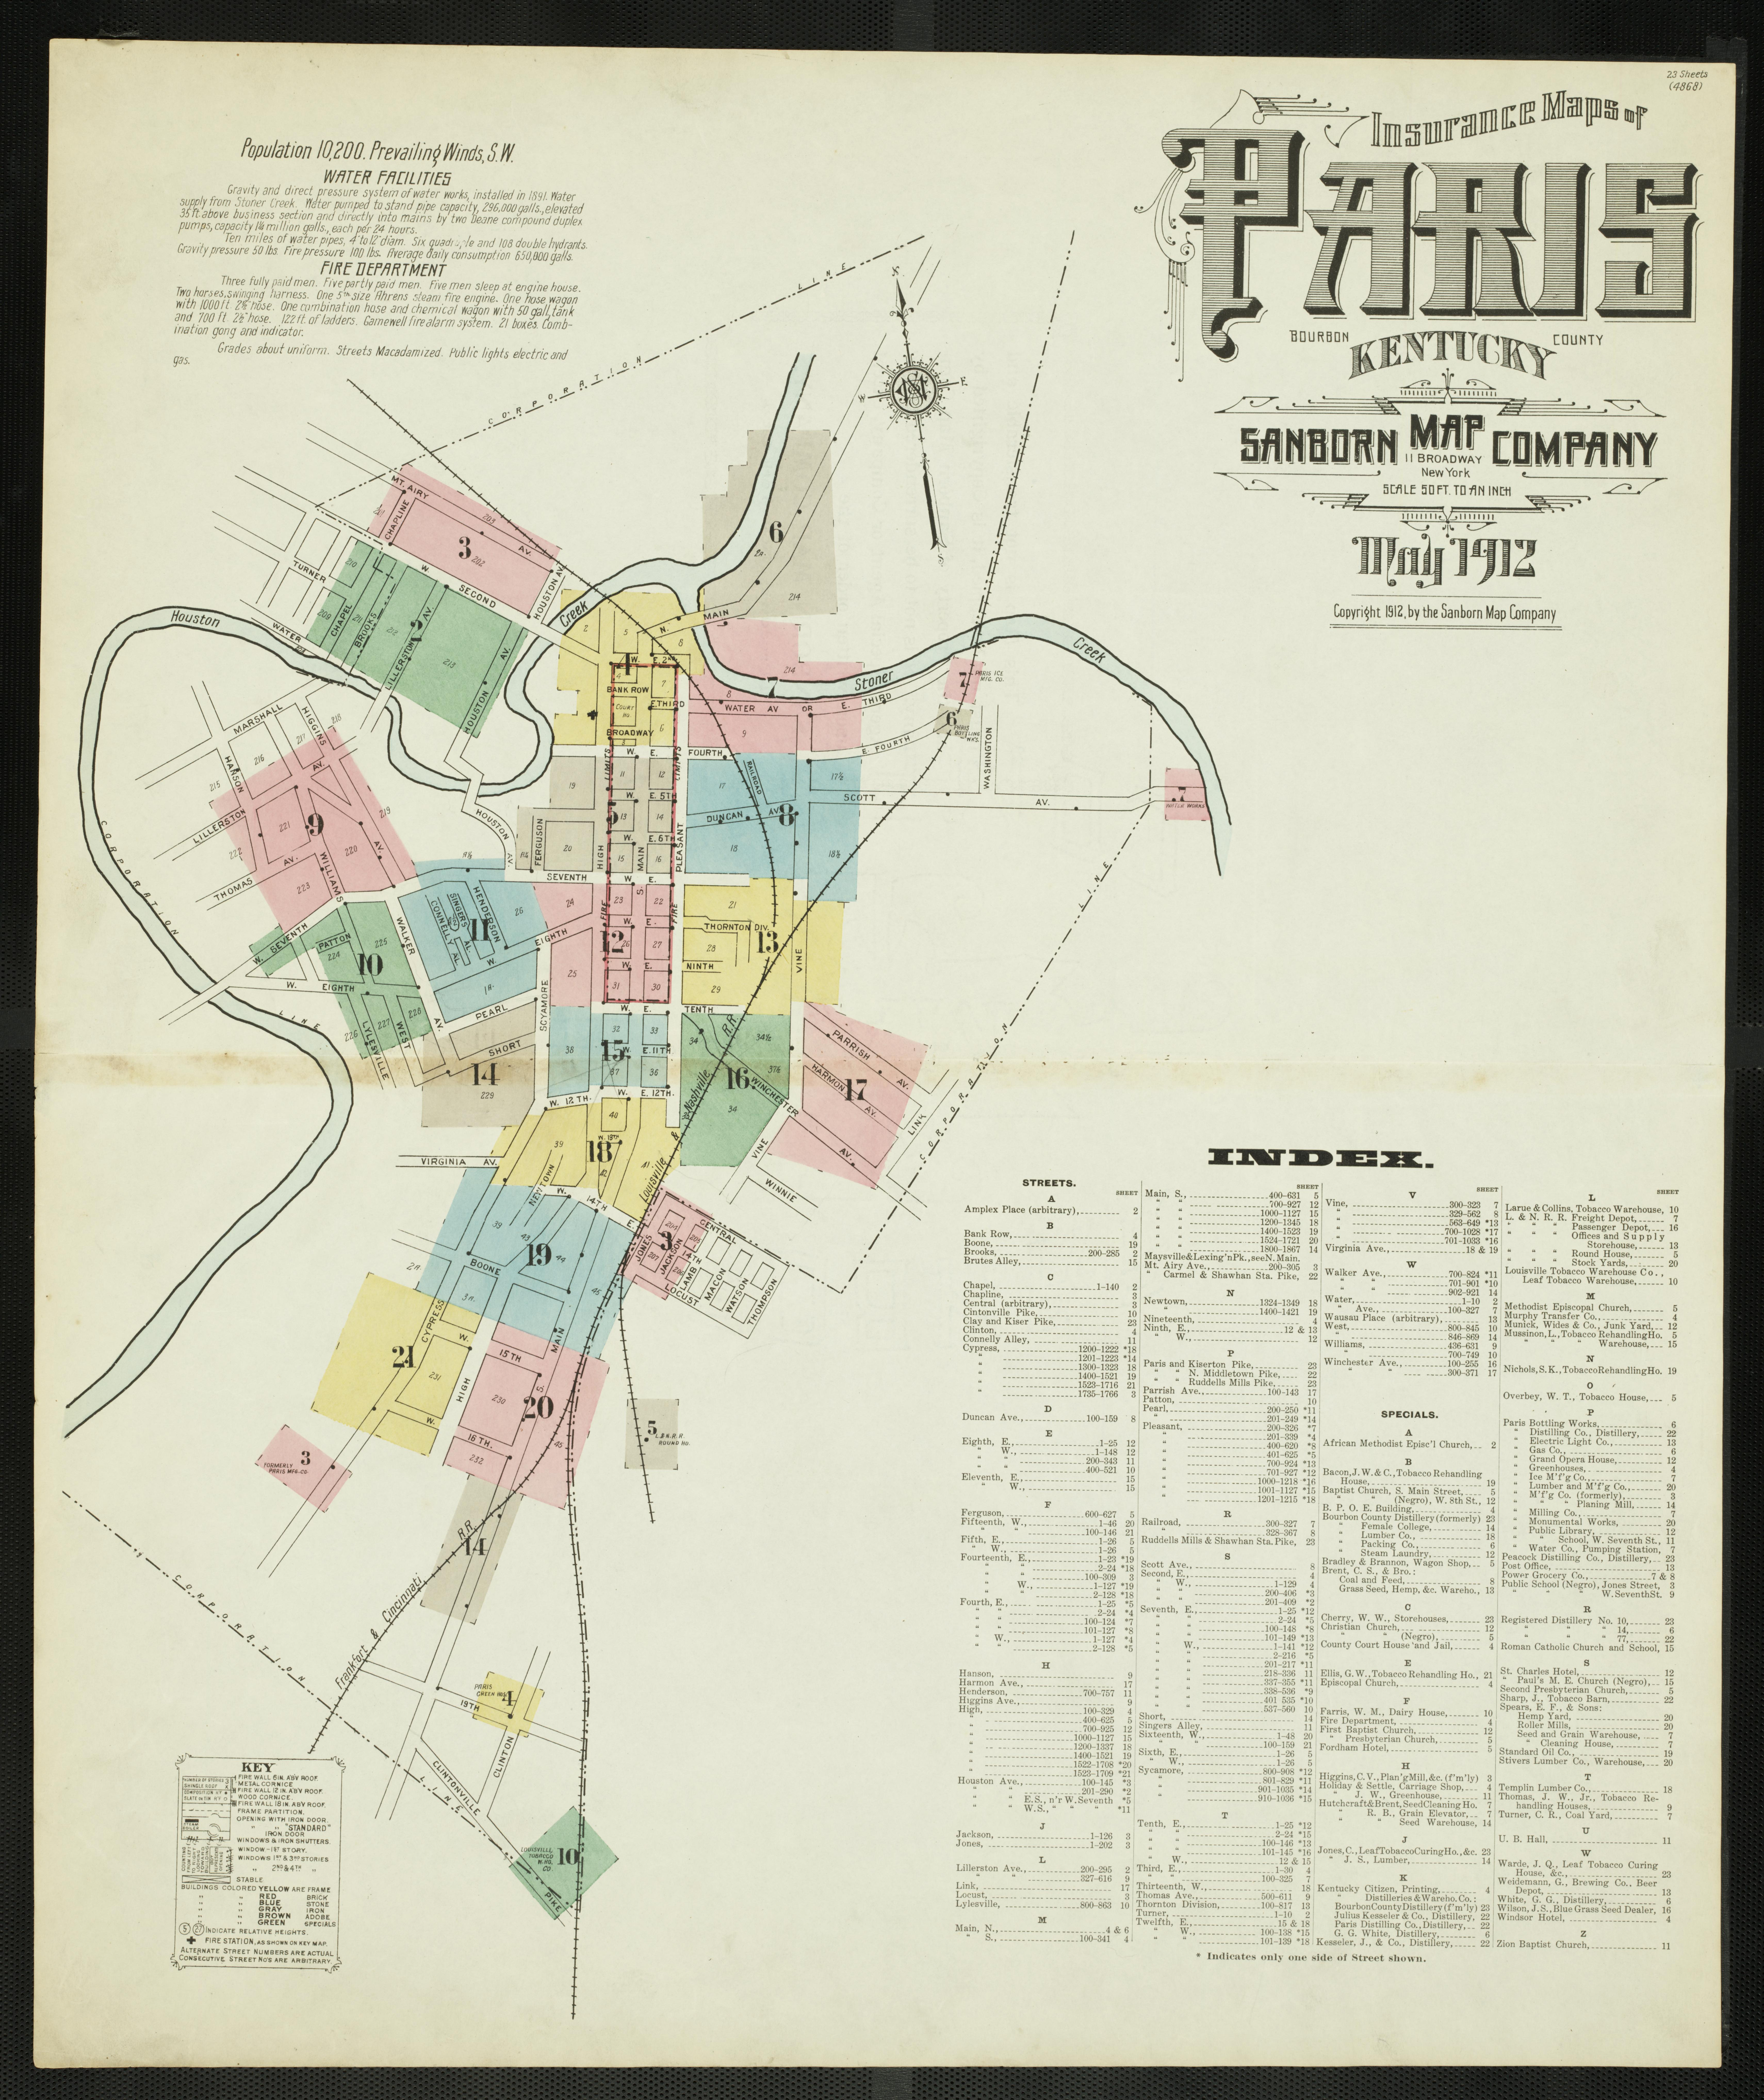 Picture of: Insurance Maps Of Paris Bourbon County Kentucky